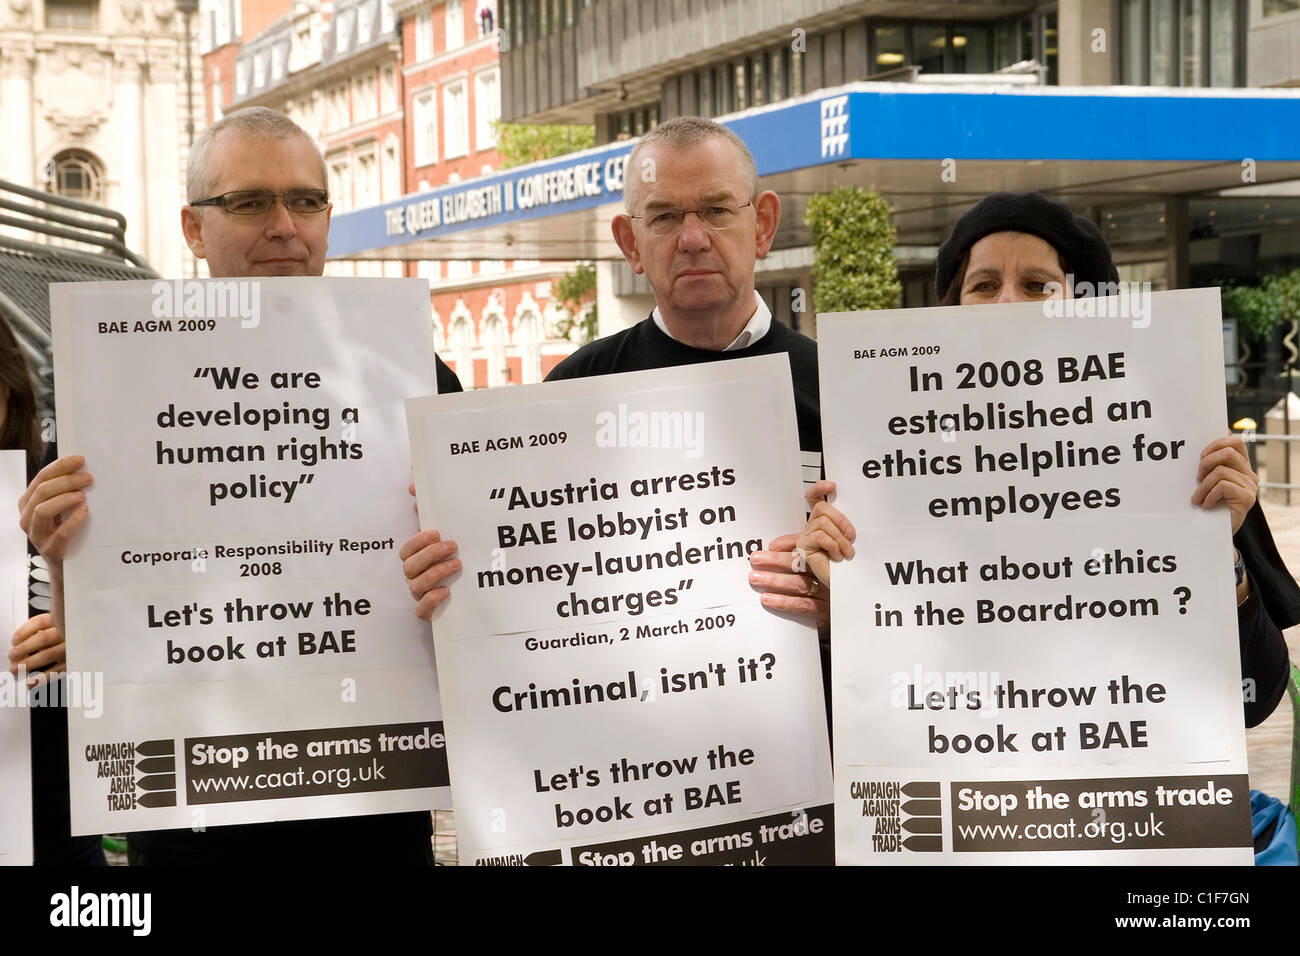 Protesters from CAAT (Campaign Against Arms Trade) demonstrate outside BAE's AGM at the Queen Elizabeth Conference Stock Photo